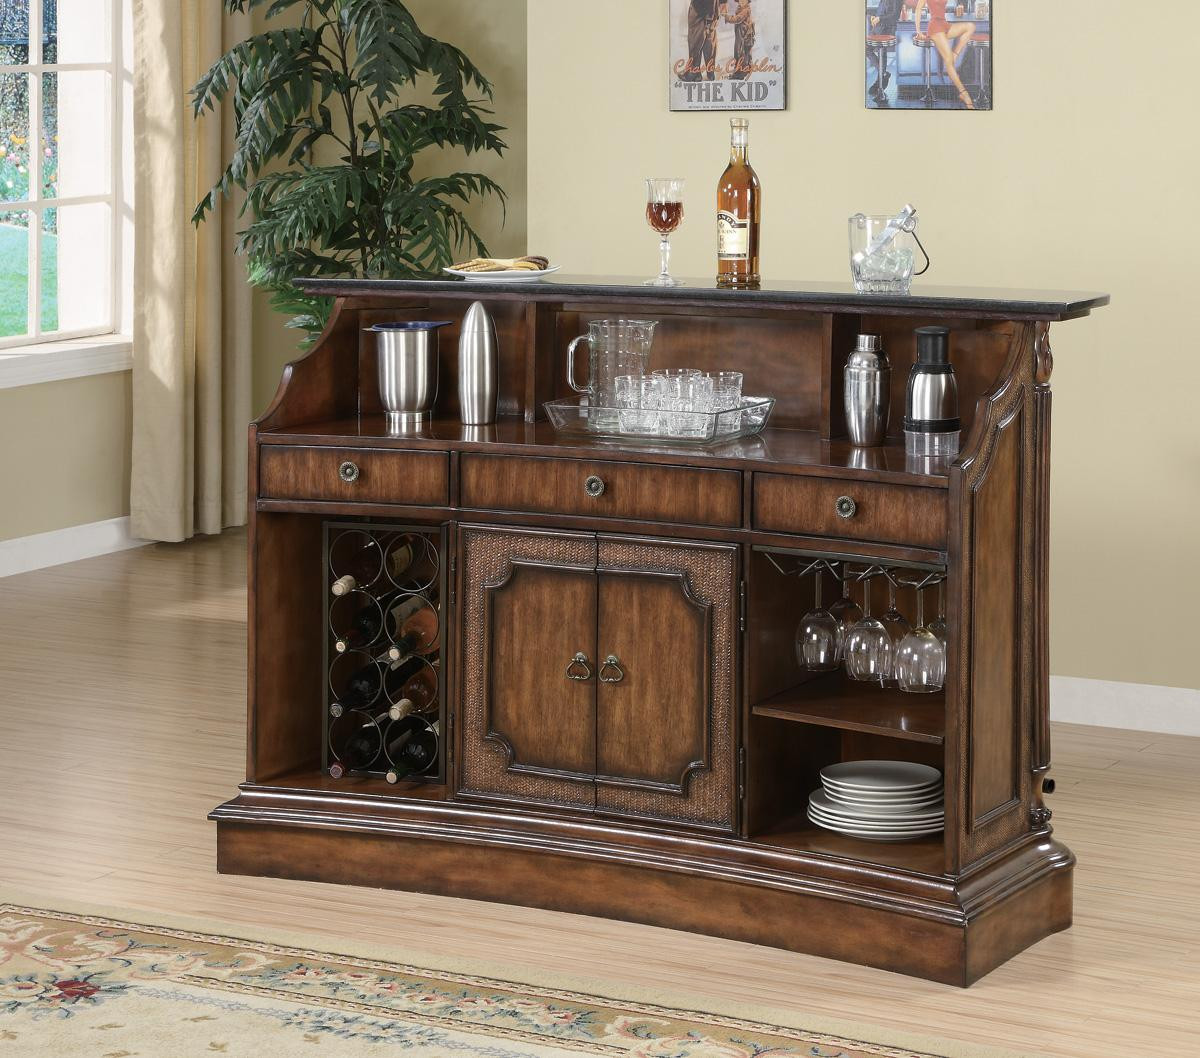 Bar Counter: Gaetano Warm Brown Bar Counter With Storage